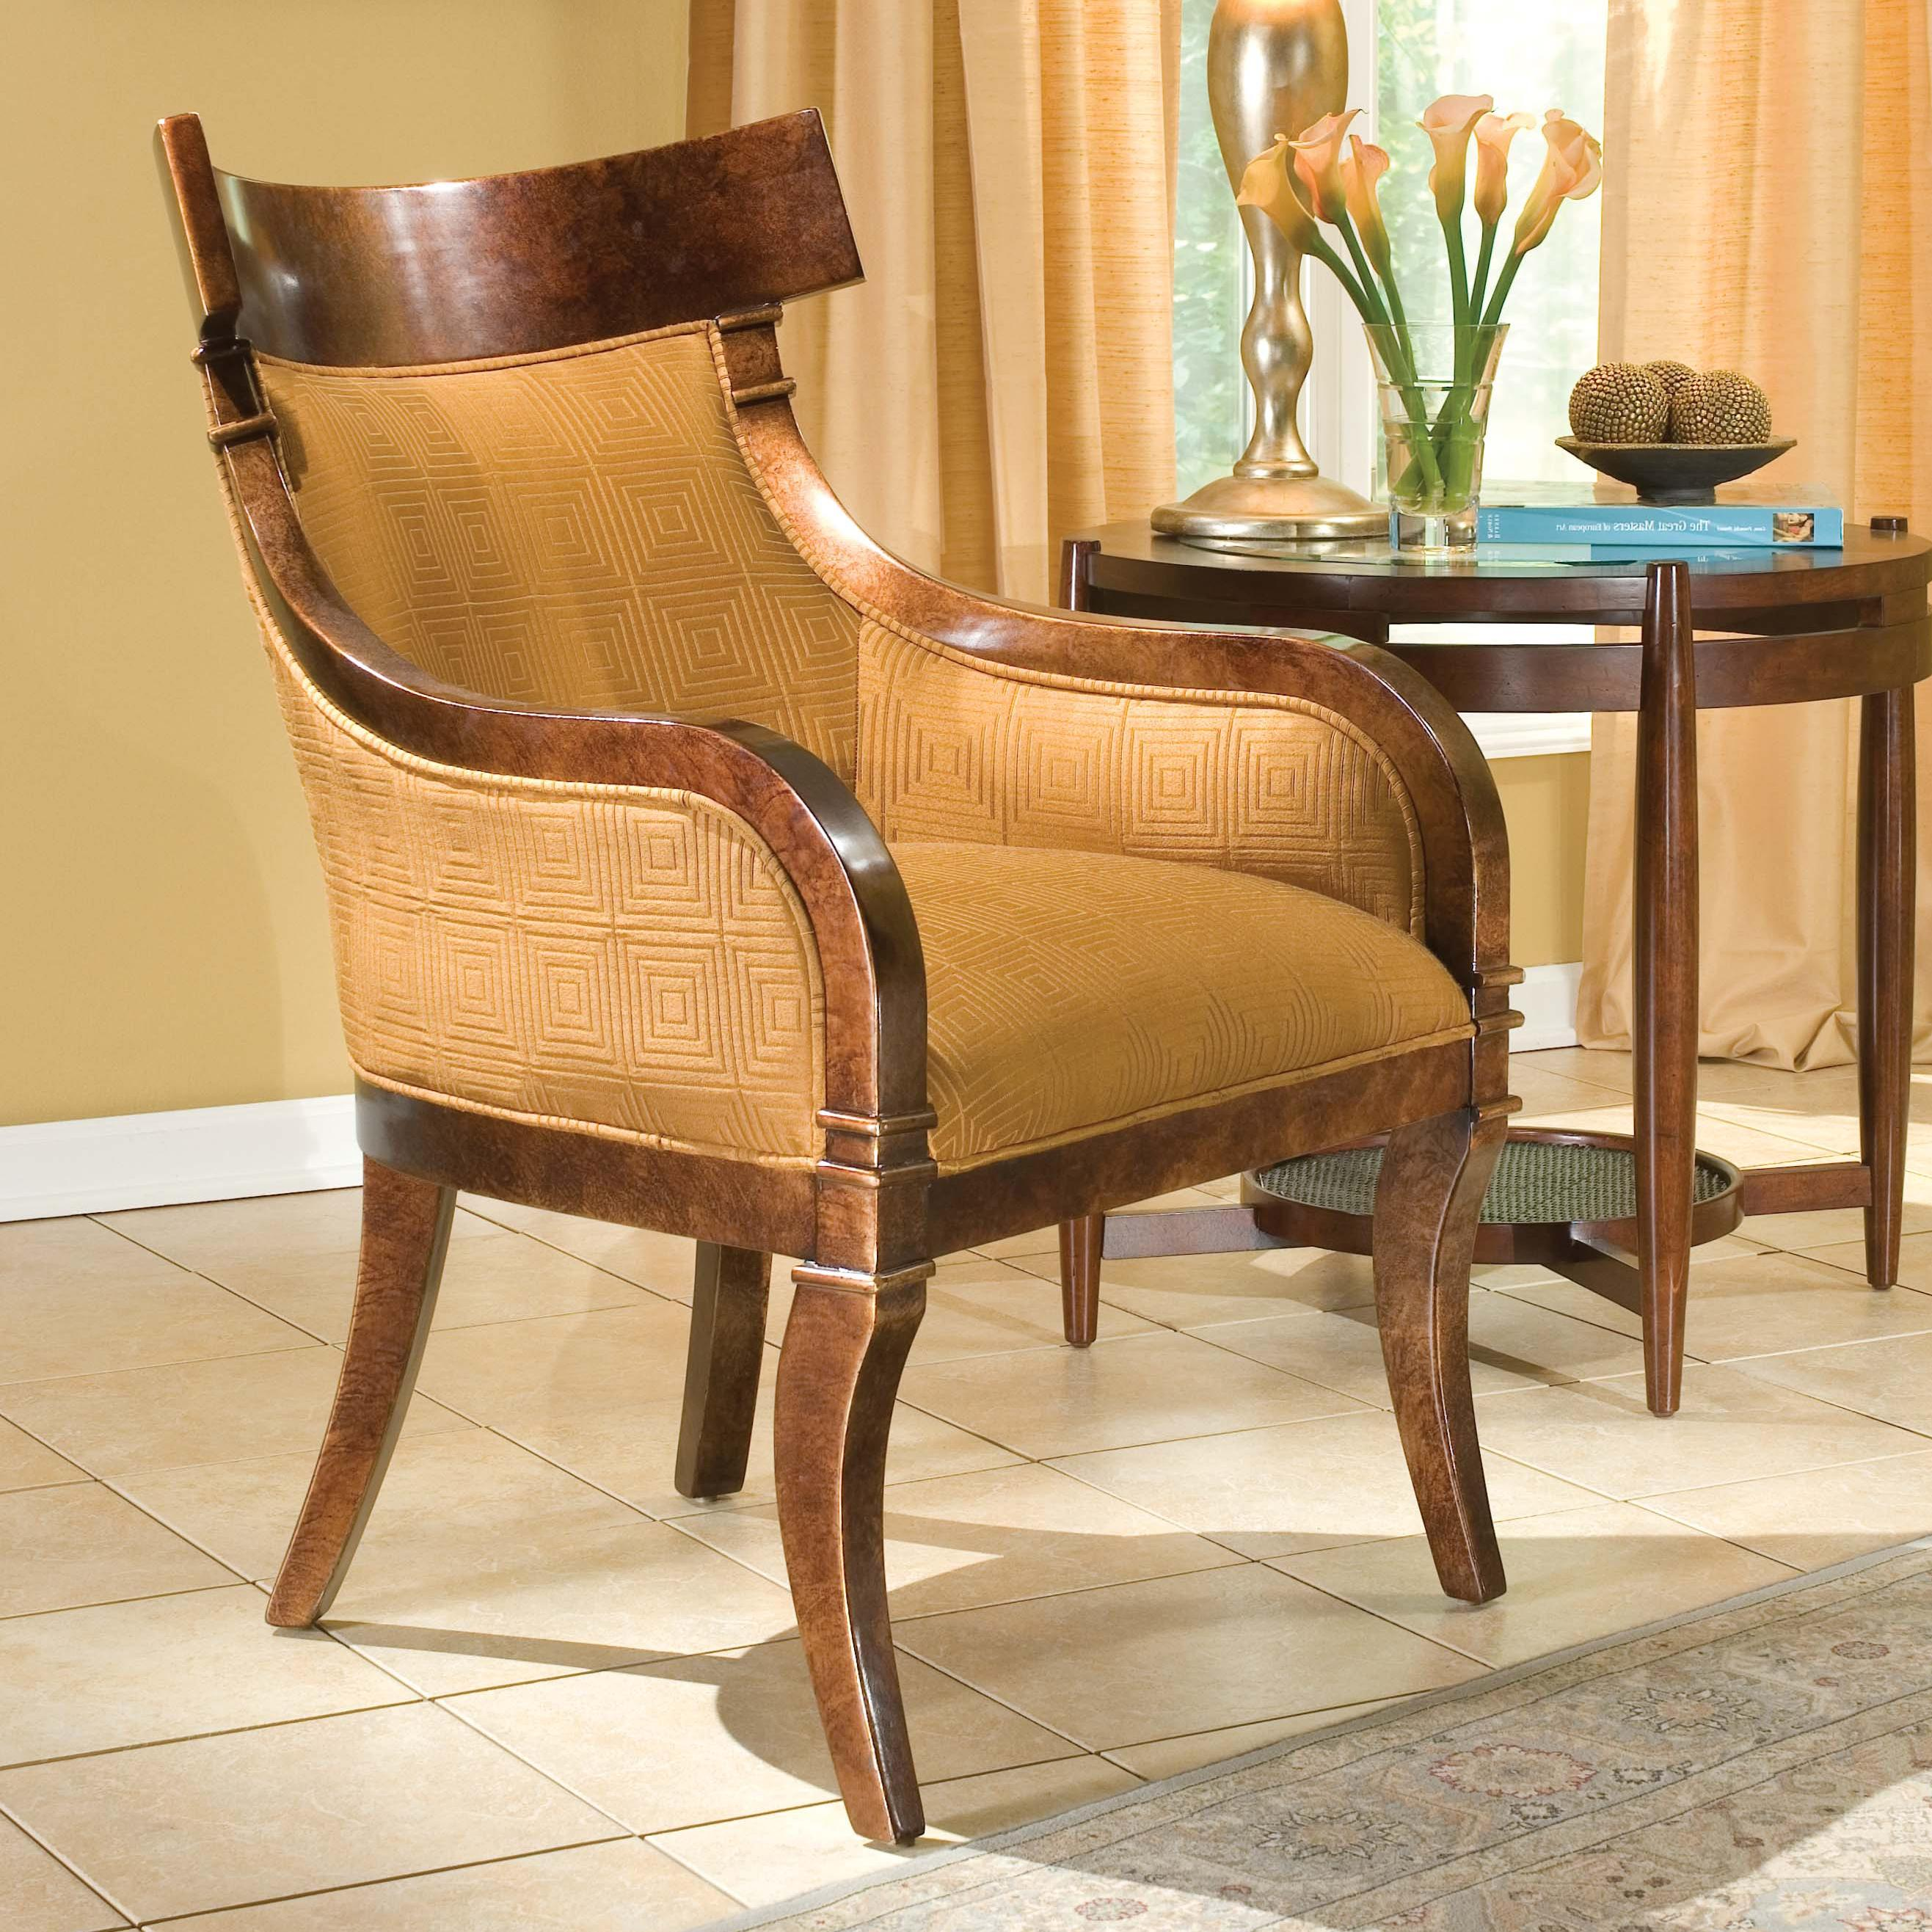 rustic accent chairs sealy posturepedic chair fairfield 5496 01 upholstered